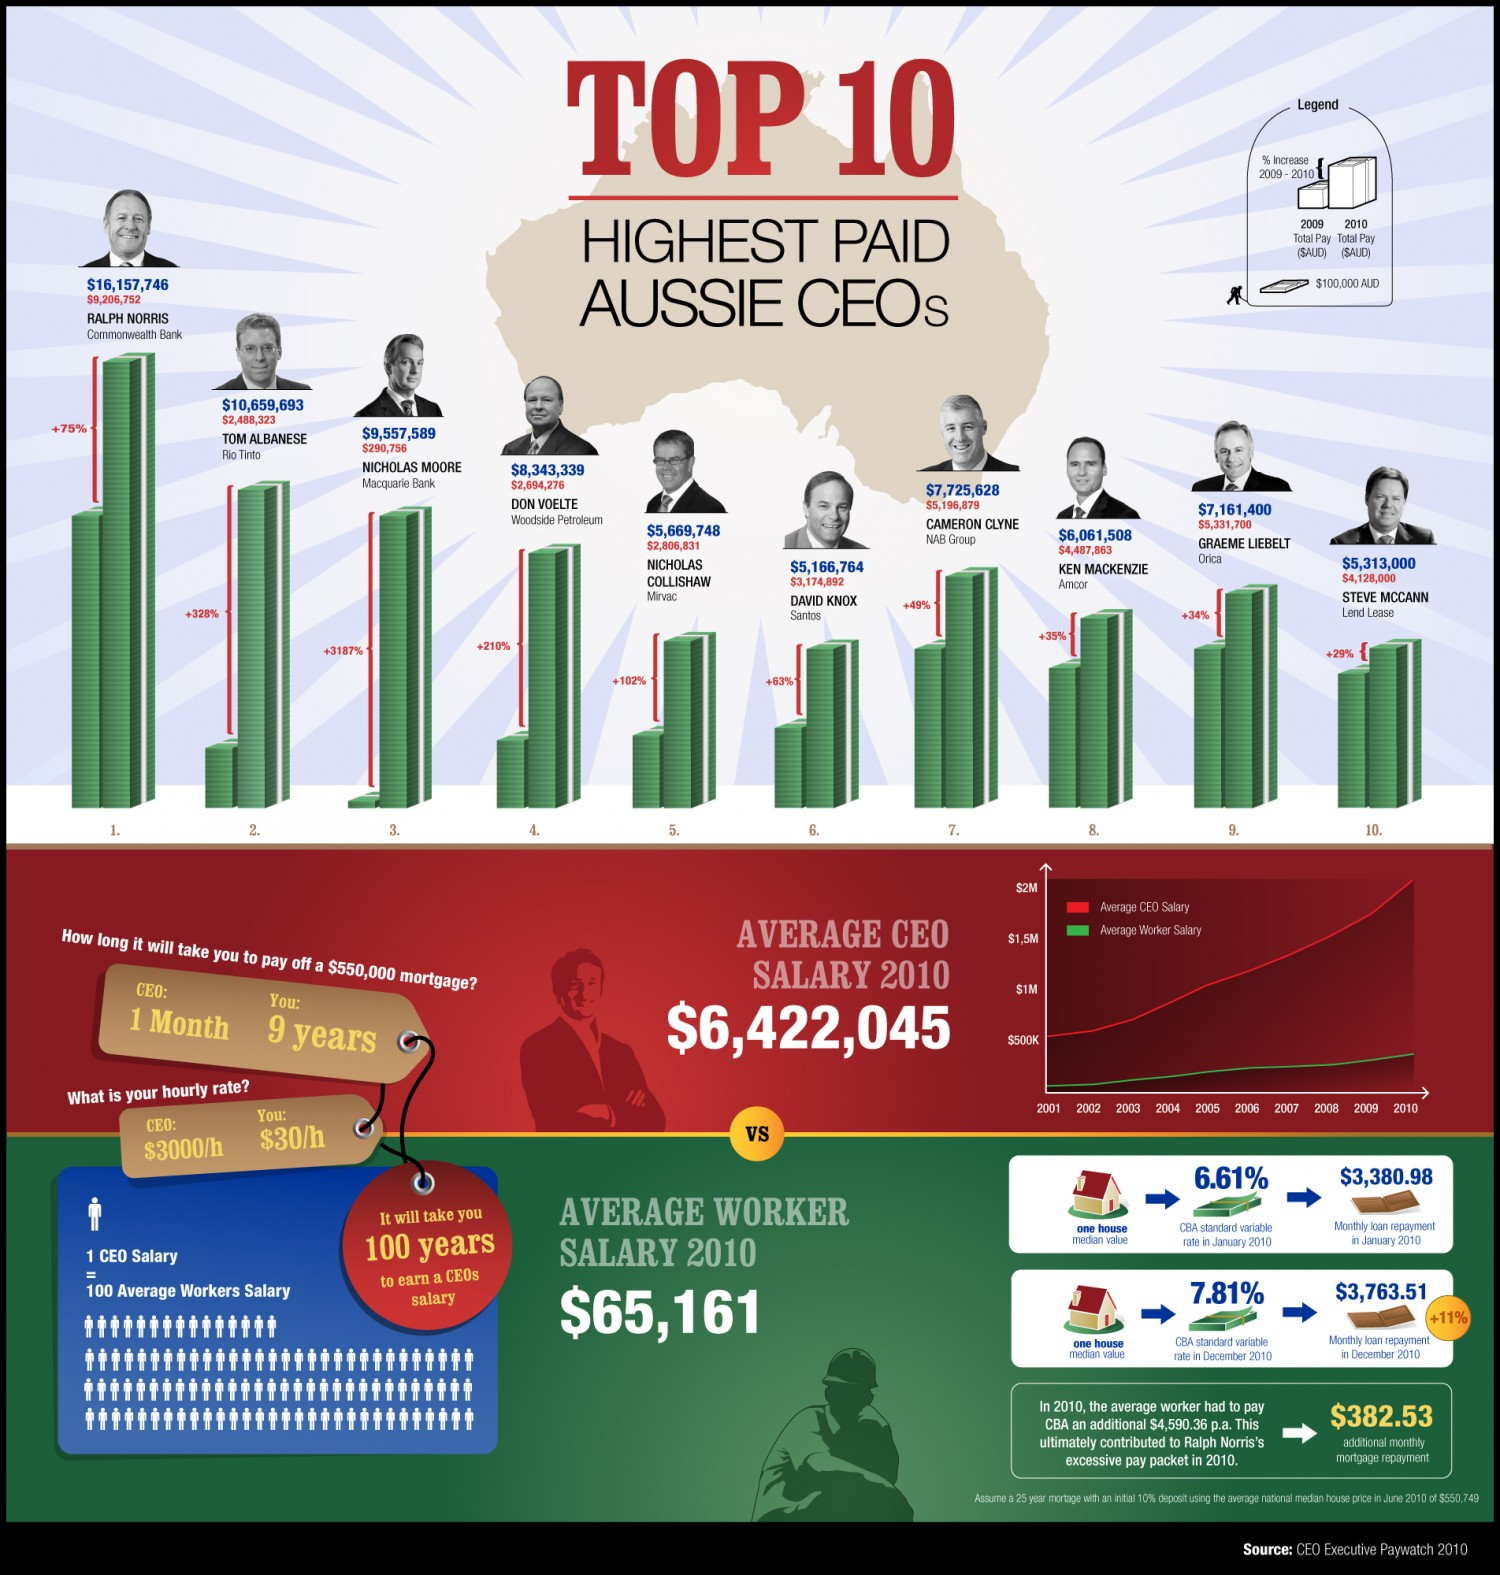 12. Highest paid Aussie CEO's